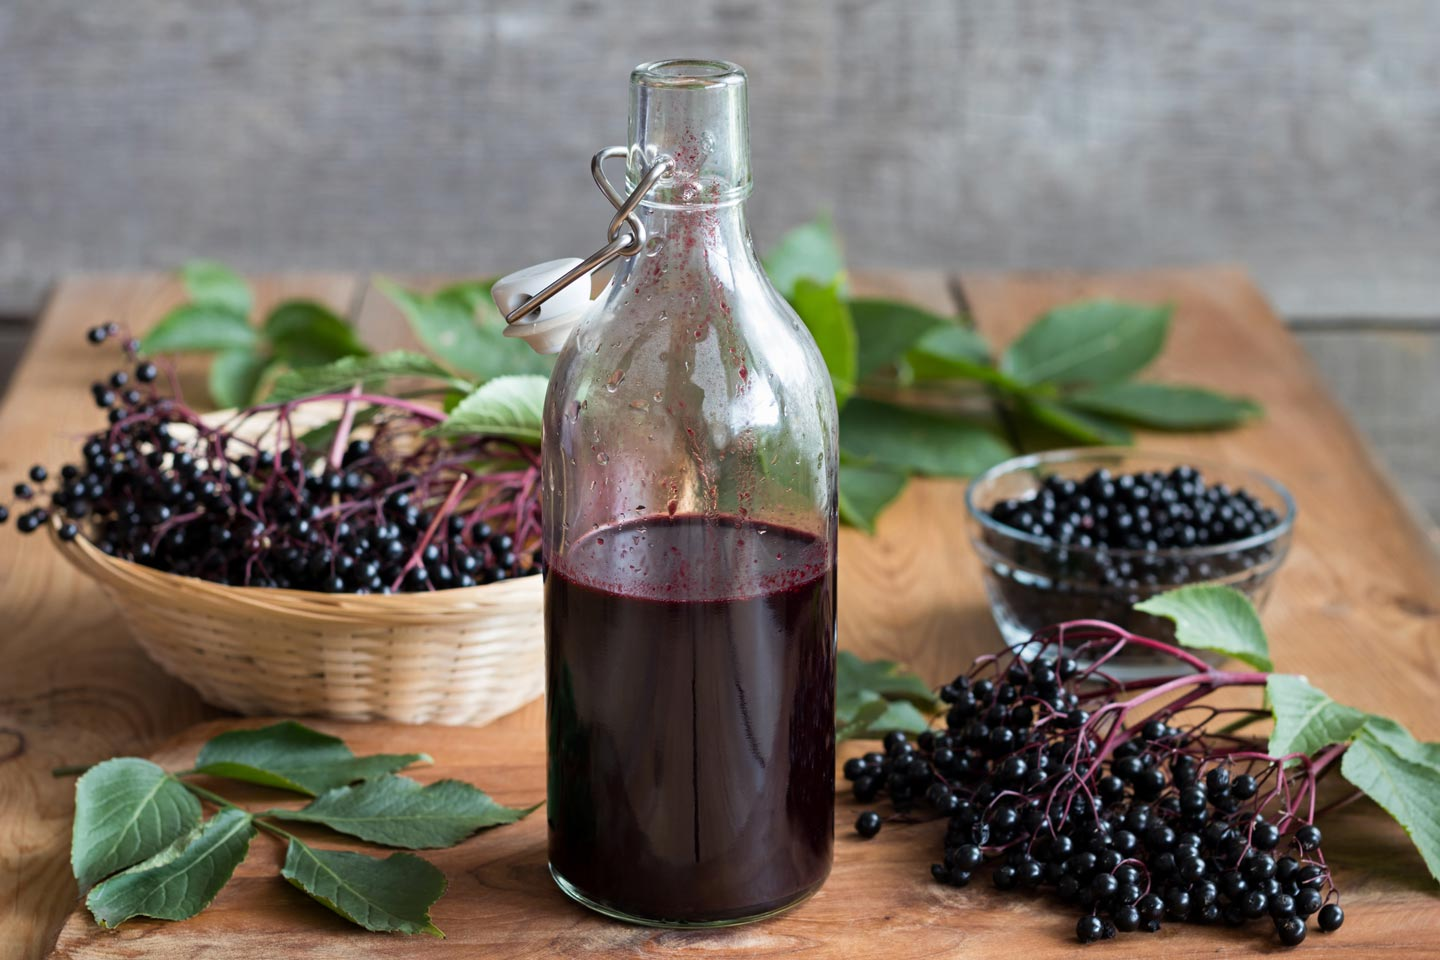 Elderberry syrup in a glass jar with elderberry bundles placed around it